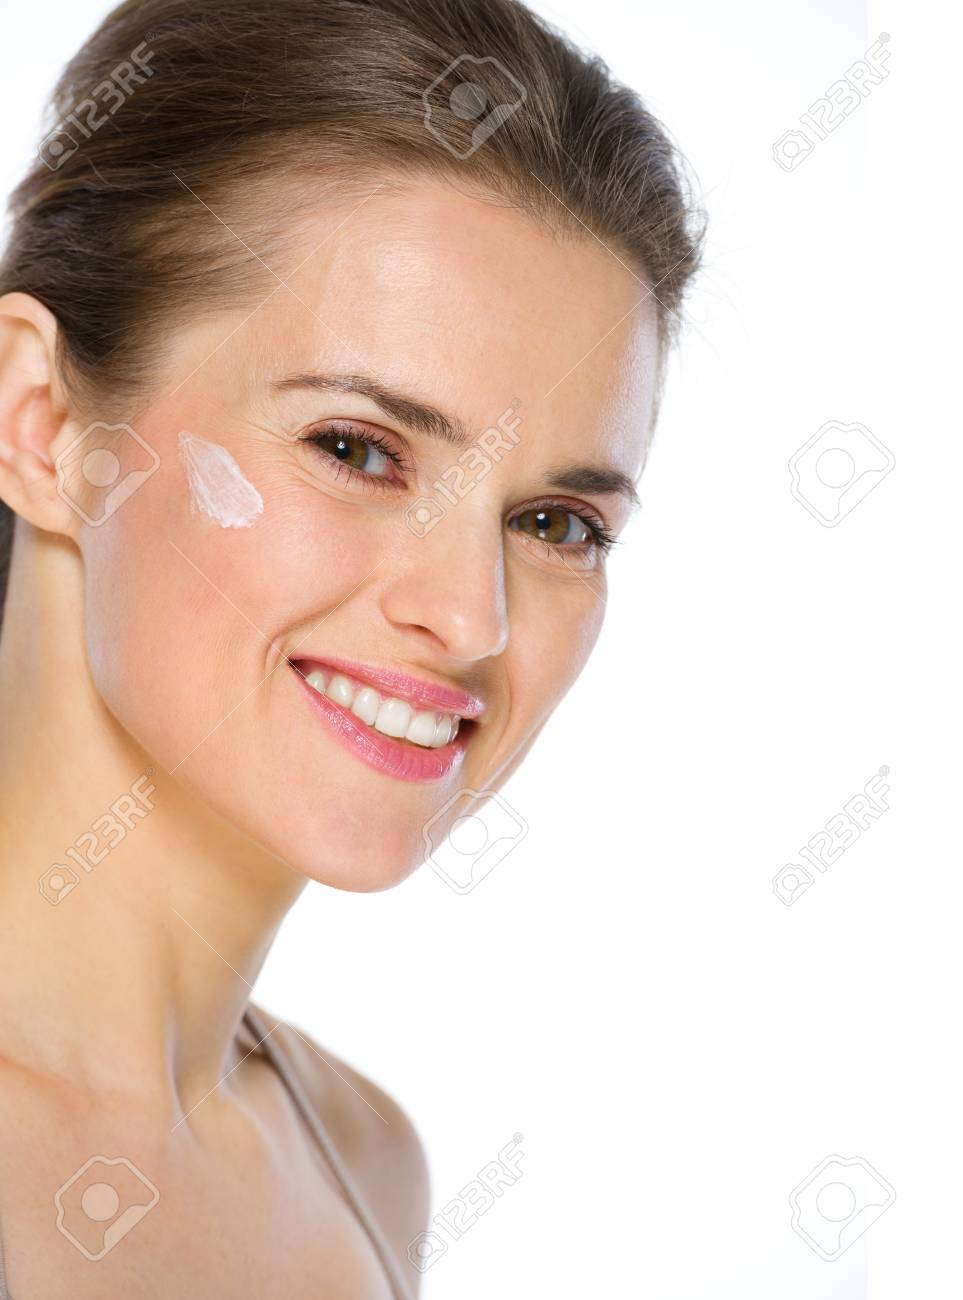 Beauty portrait of happy young woman with creme on cheek Stock Photo - 19848824